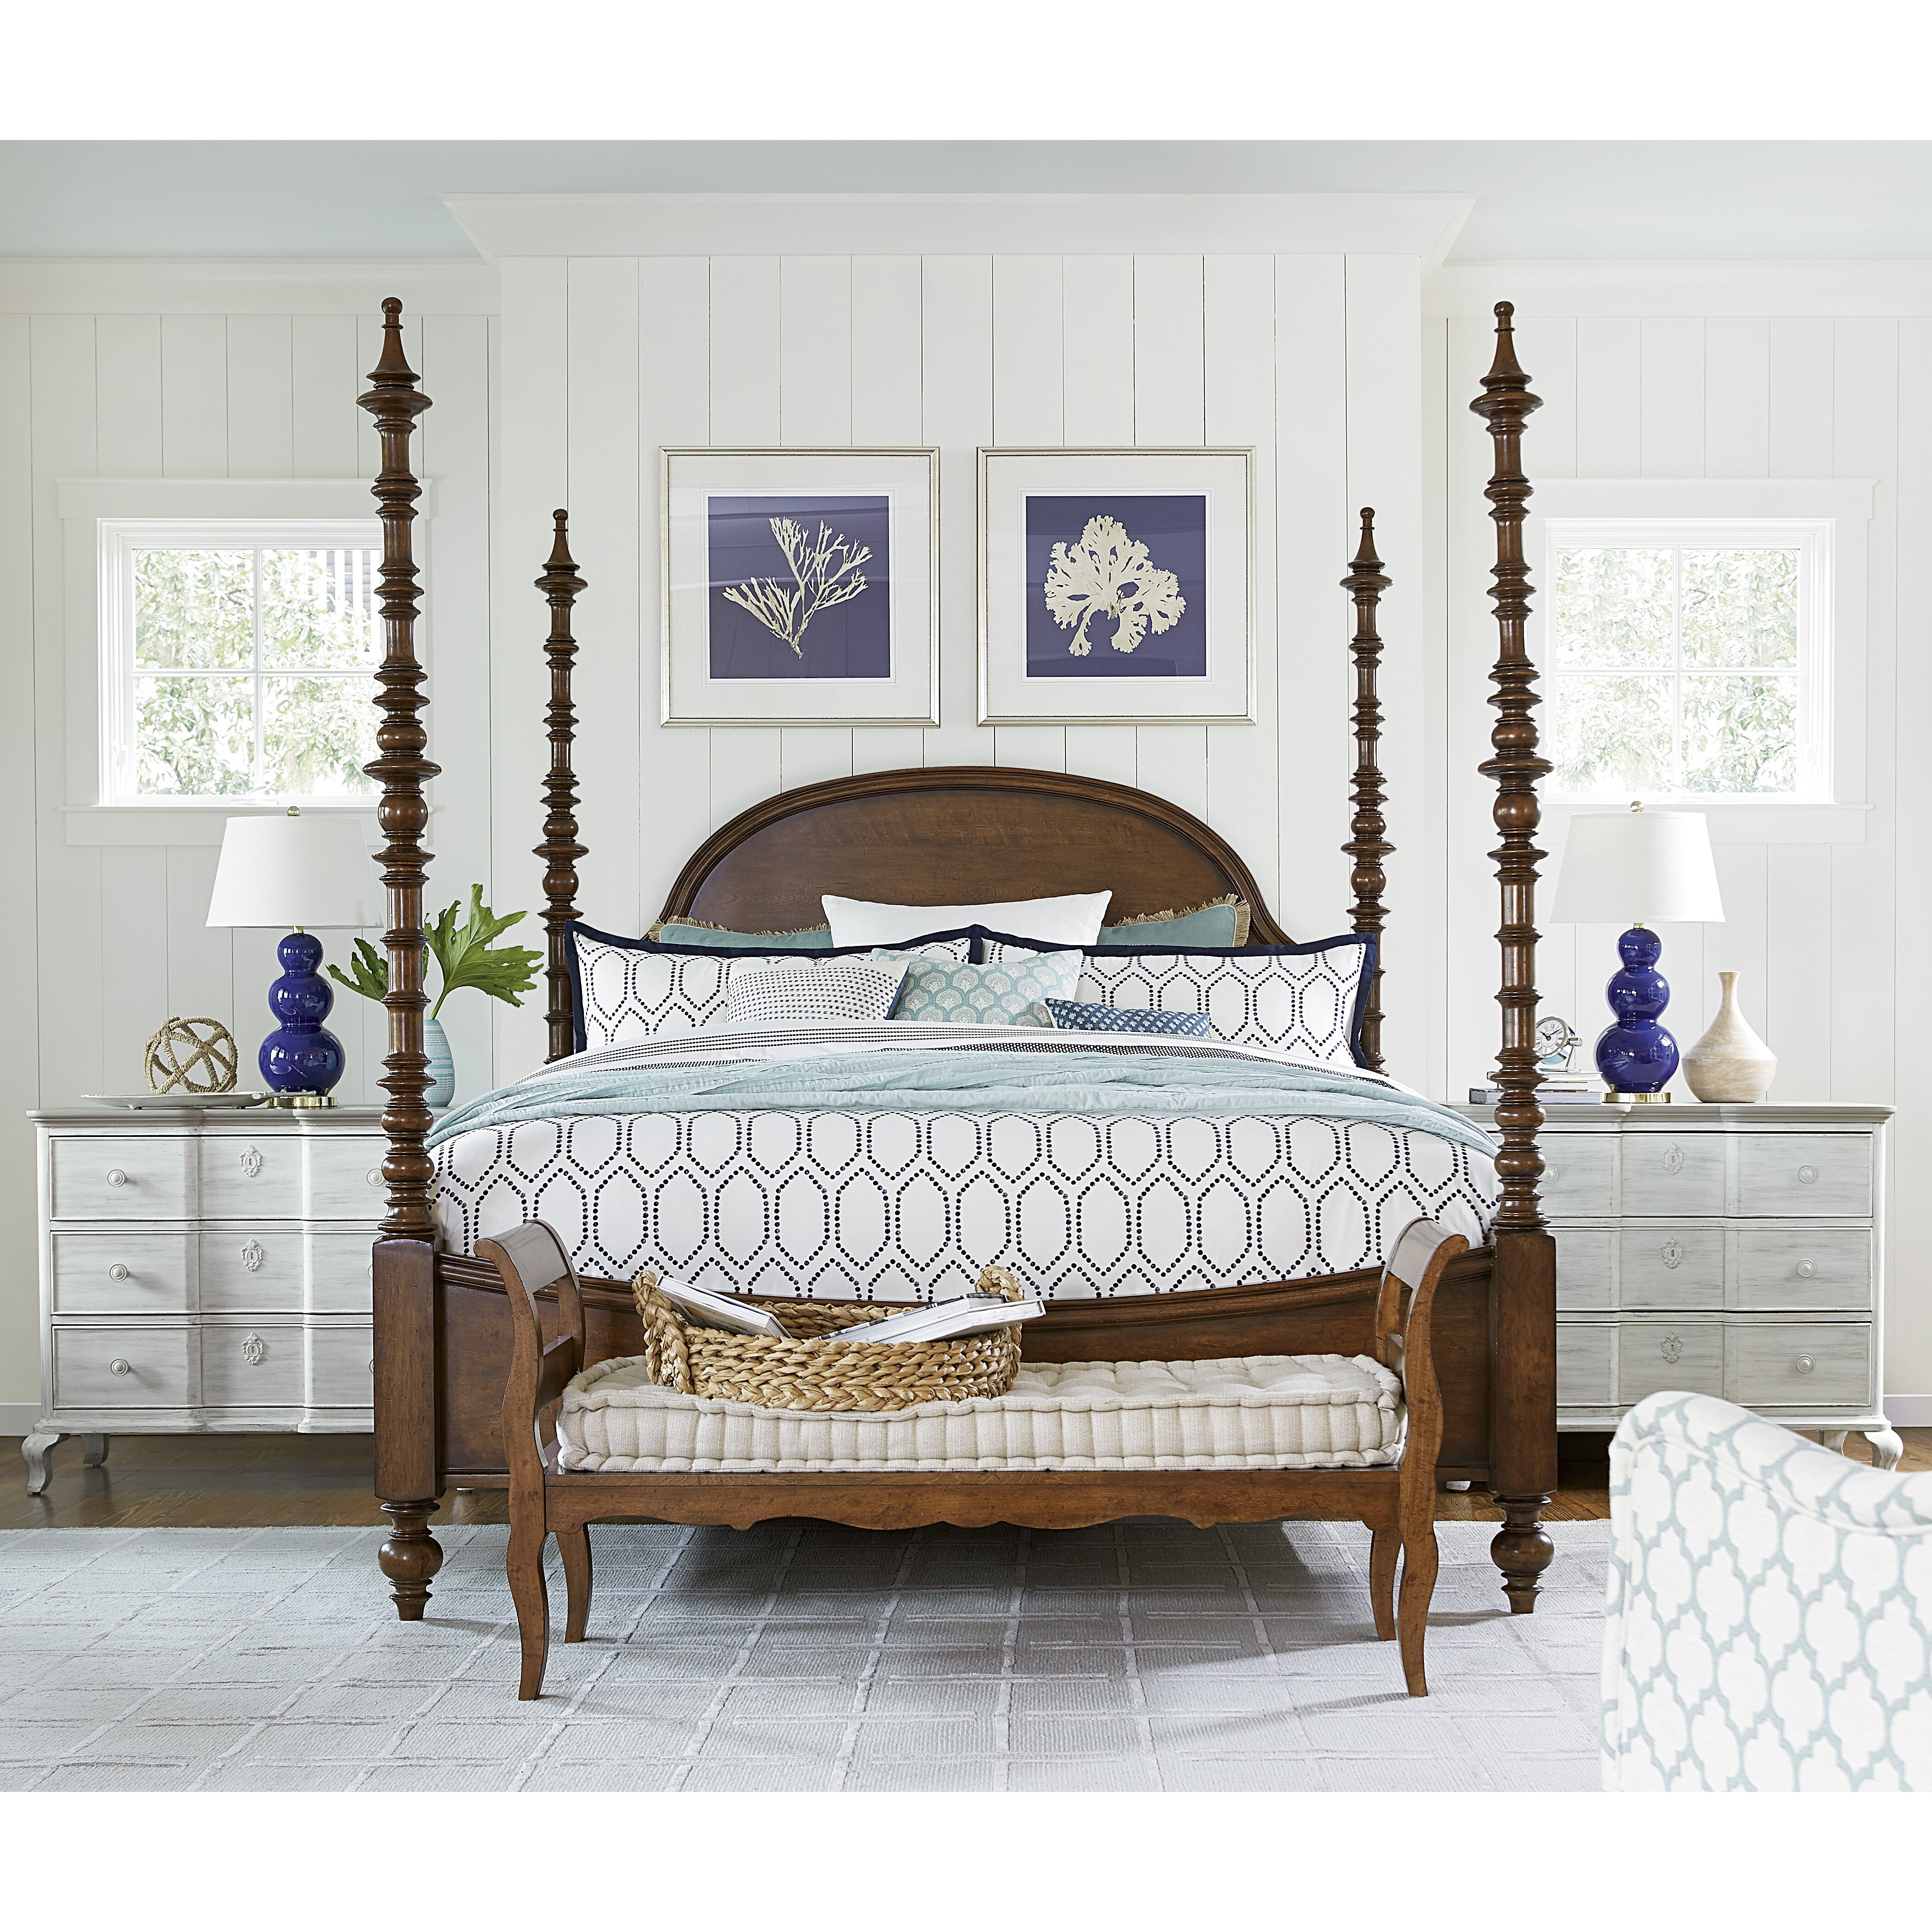 Paula Deen Bedroom Furniture Collection Steel Magnolia Paula Deen Home Dogwood Four Poster Customizable Bedroom Set